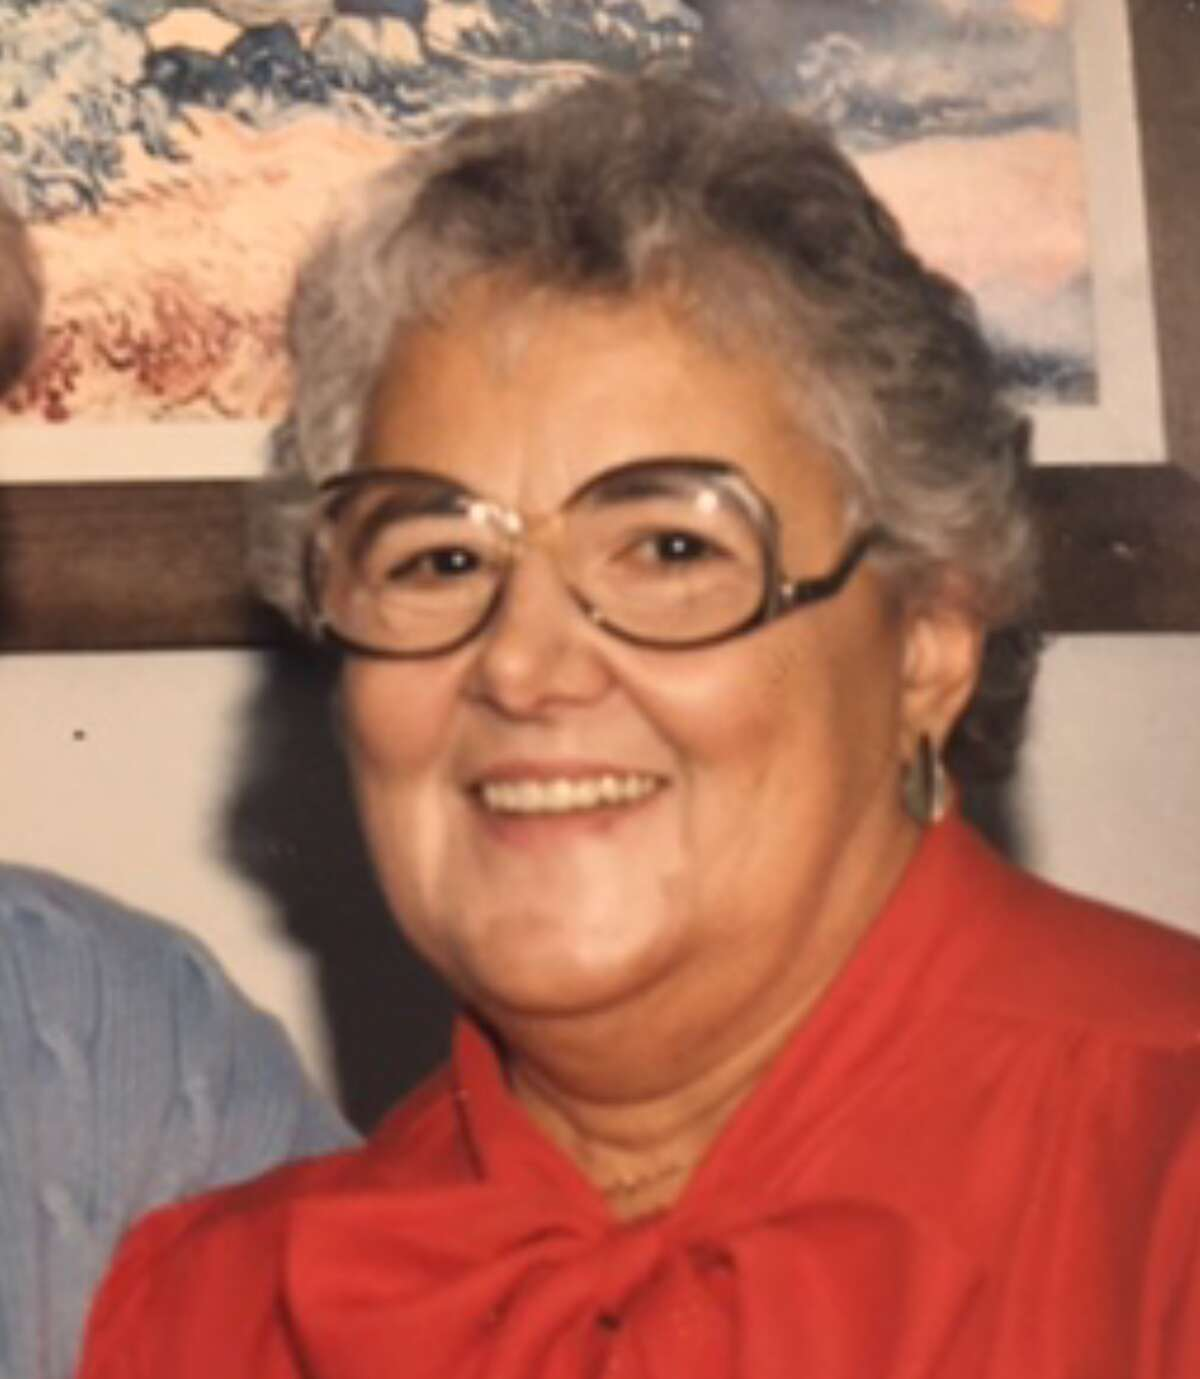 Retired nurse Barbara Louise Sullivan died at 96. Her daughter describes her mom as resilent.